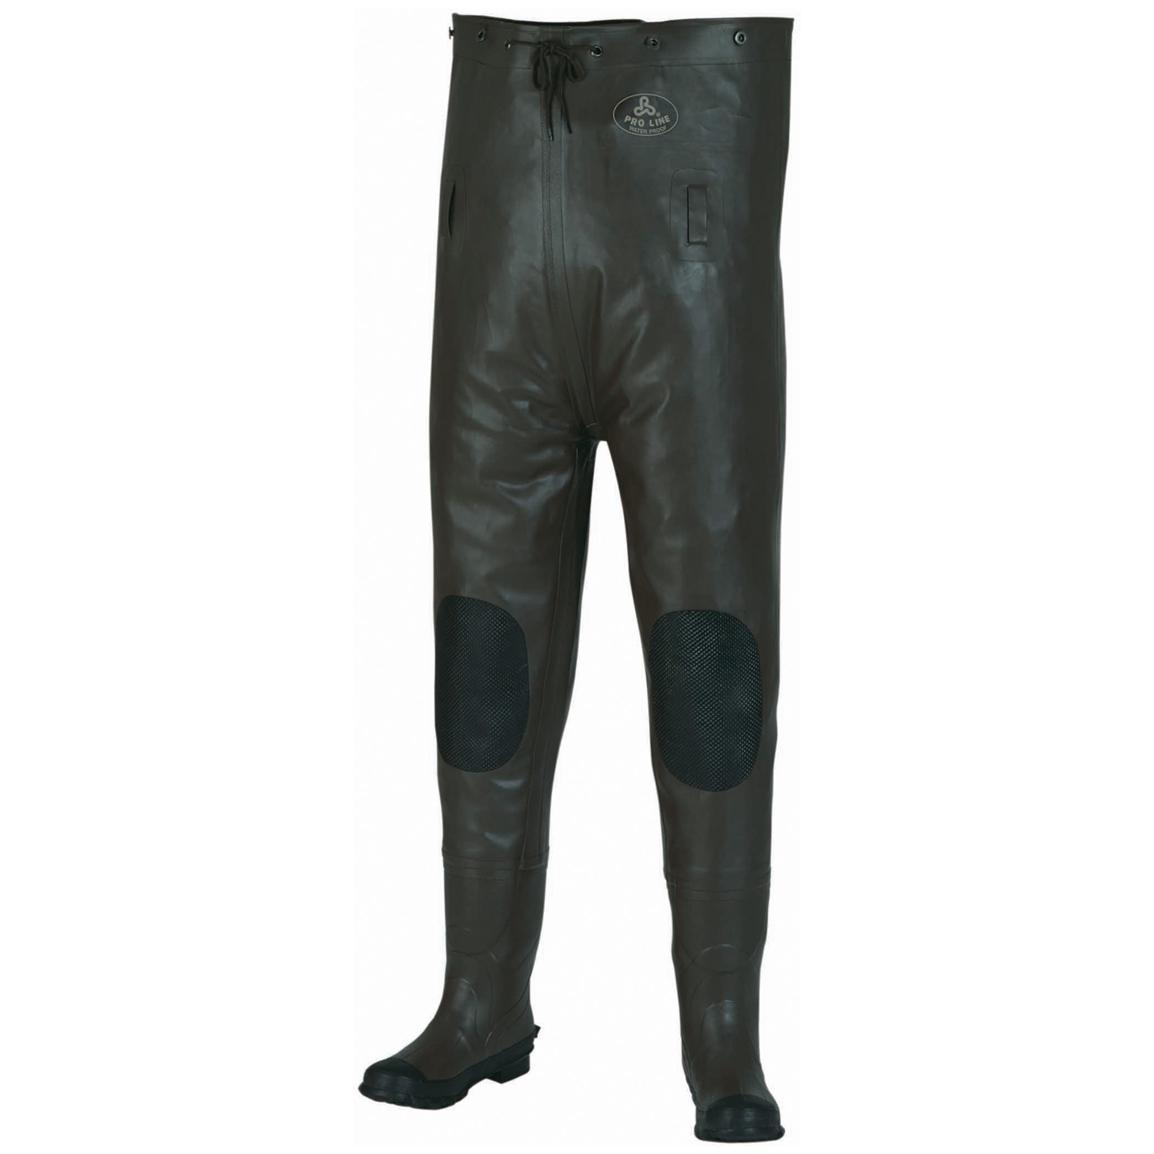 Pro Line Men's Stream Rubber Chest Waders, Cleated, Brown